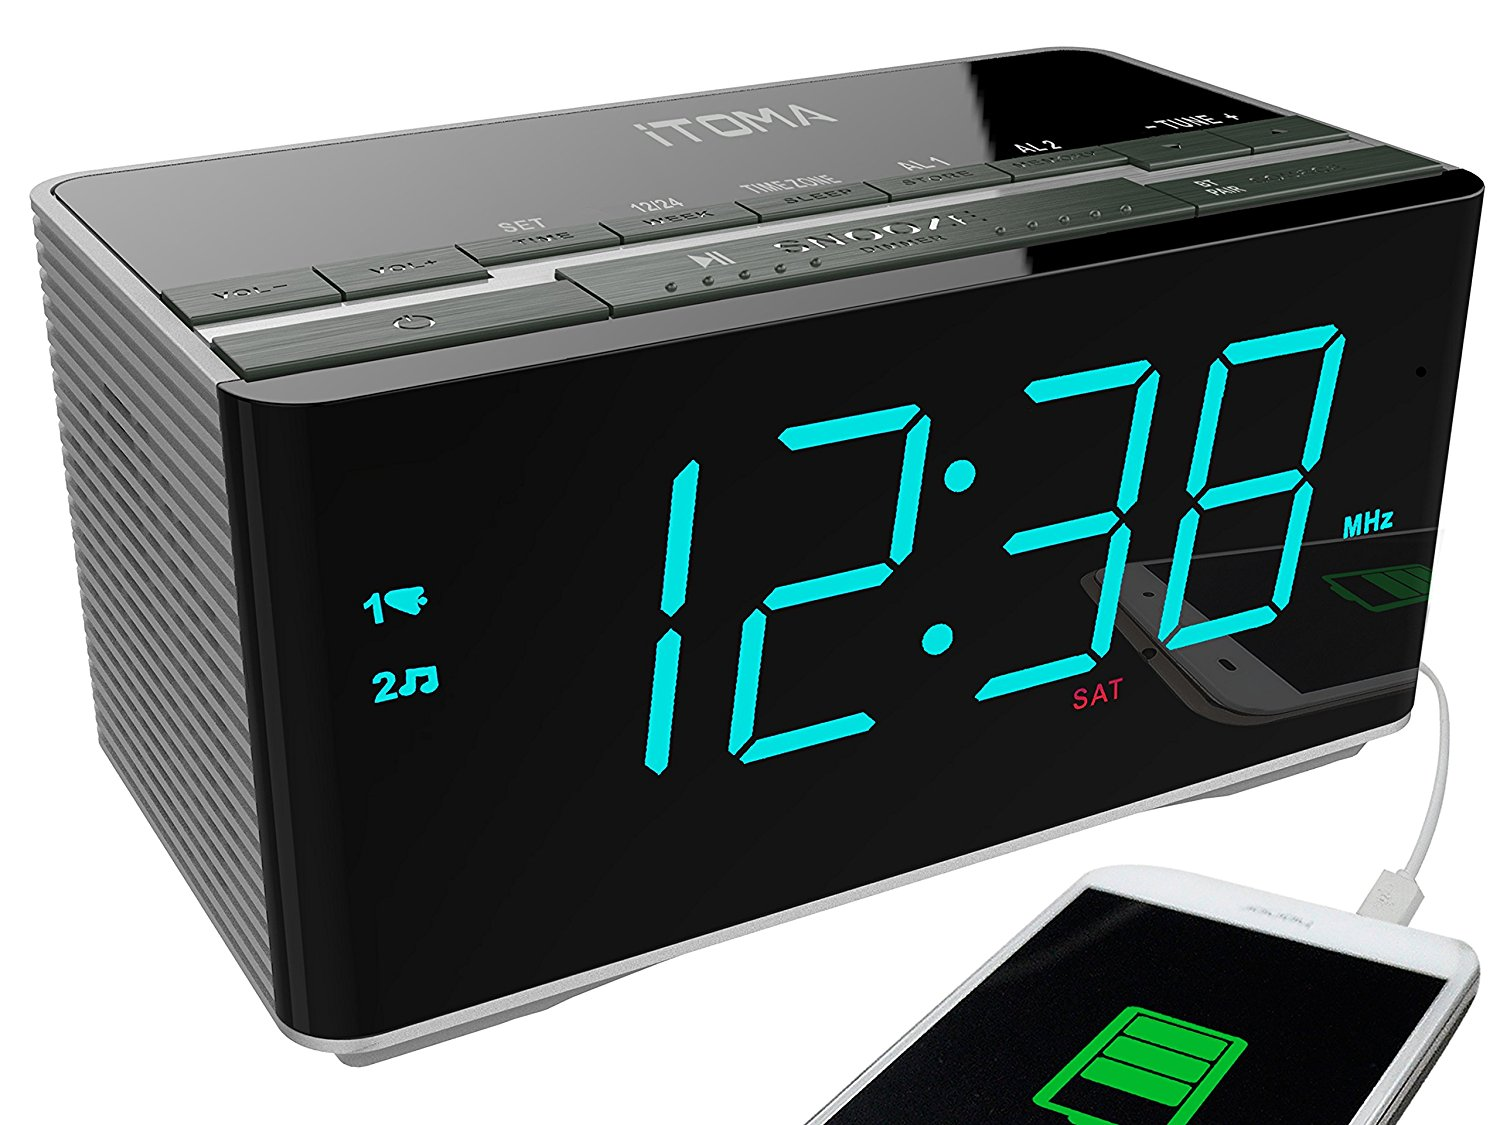 iTOMA Alarm Clock Radio with Wireless Bluetooth Stereo Speakers,Digital FM Radio,Auto Time Setting,Dual Alarm with Snooze,Auto Dimmer,Cell Phone USB Charging (CKS3501BT)